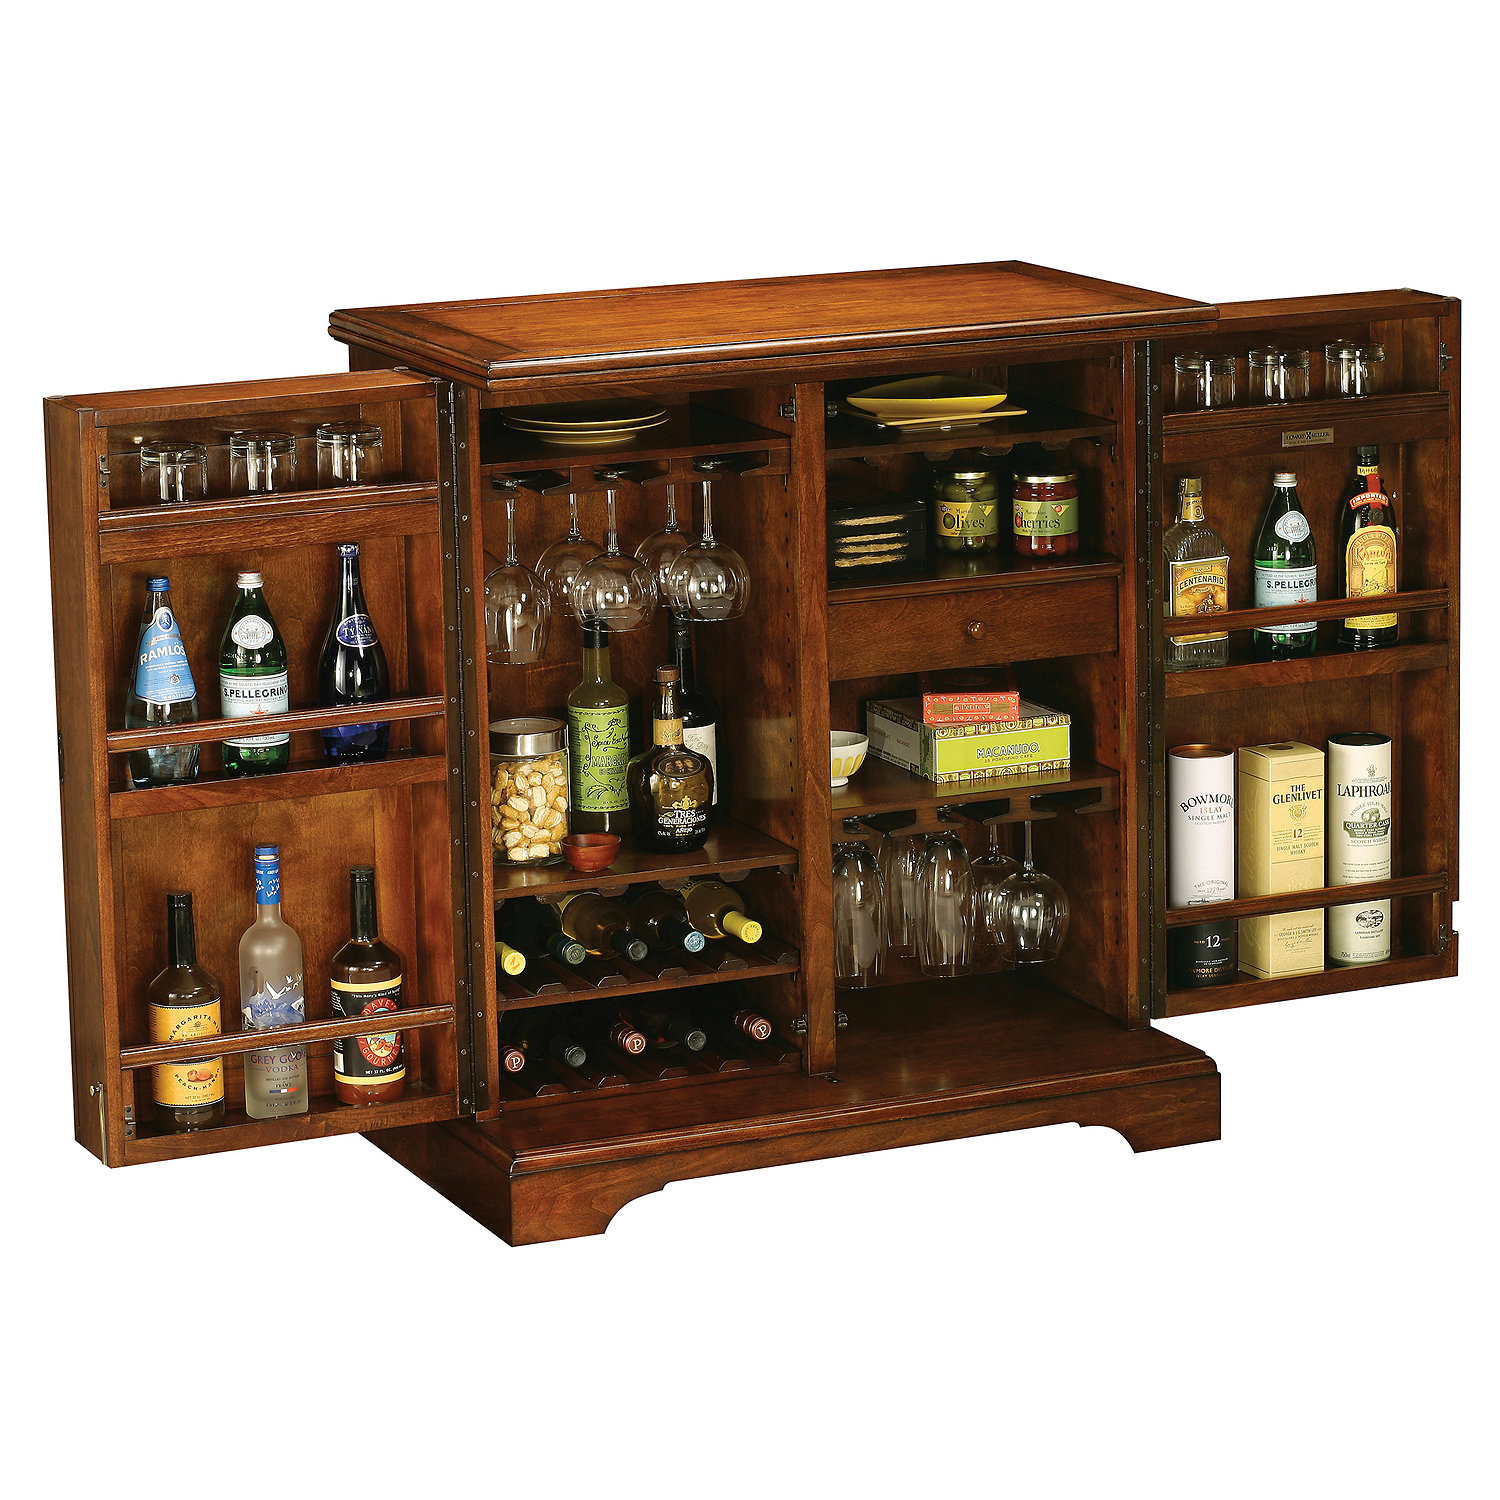 Home Bar Furniture & Full Service Home Bars - Wine Enthusiast